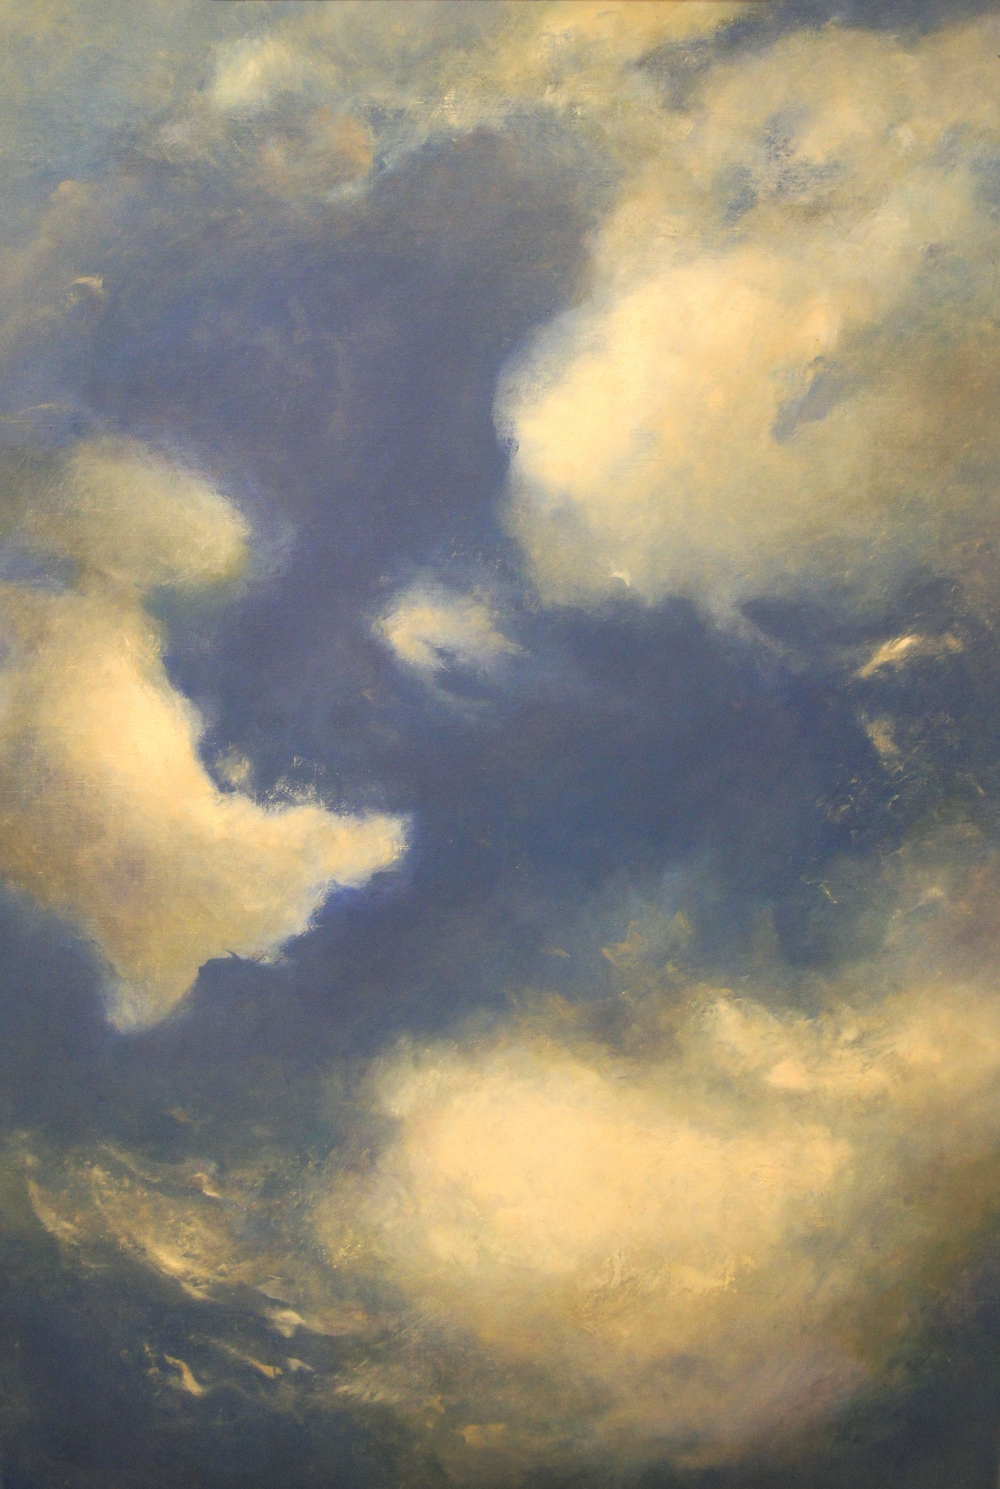 Clouds 2013, Oil on Linen (41 x 27 inch)